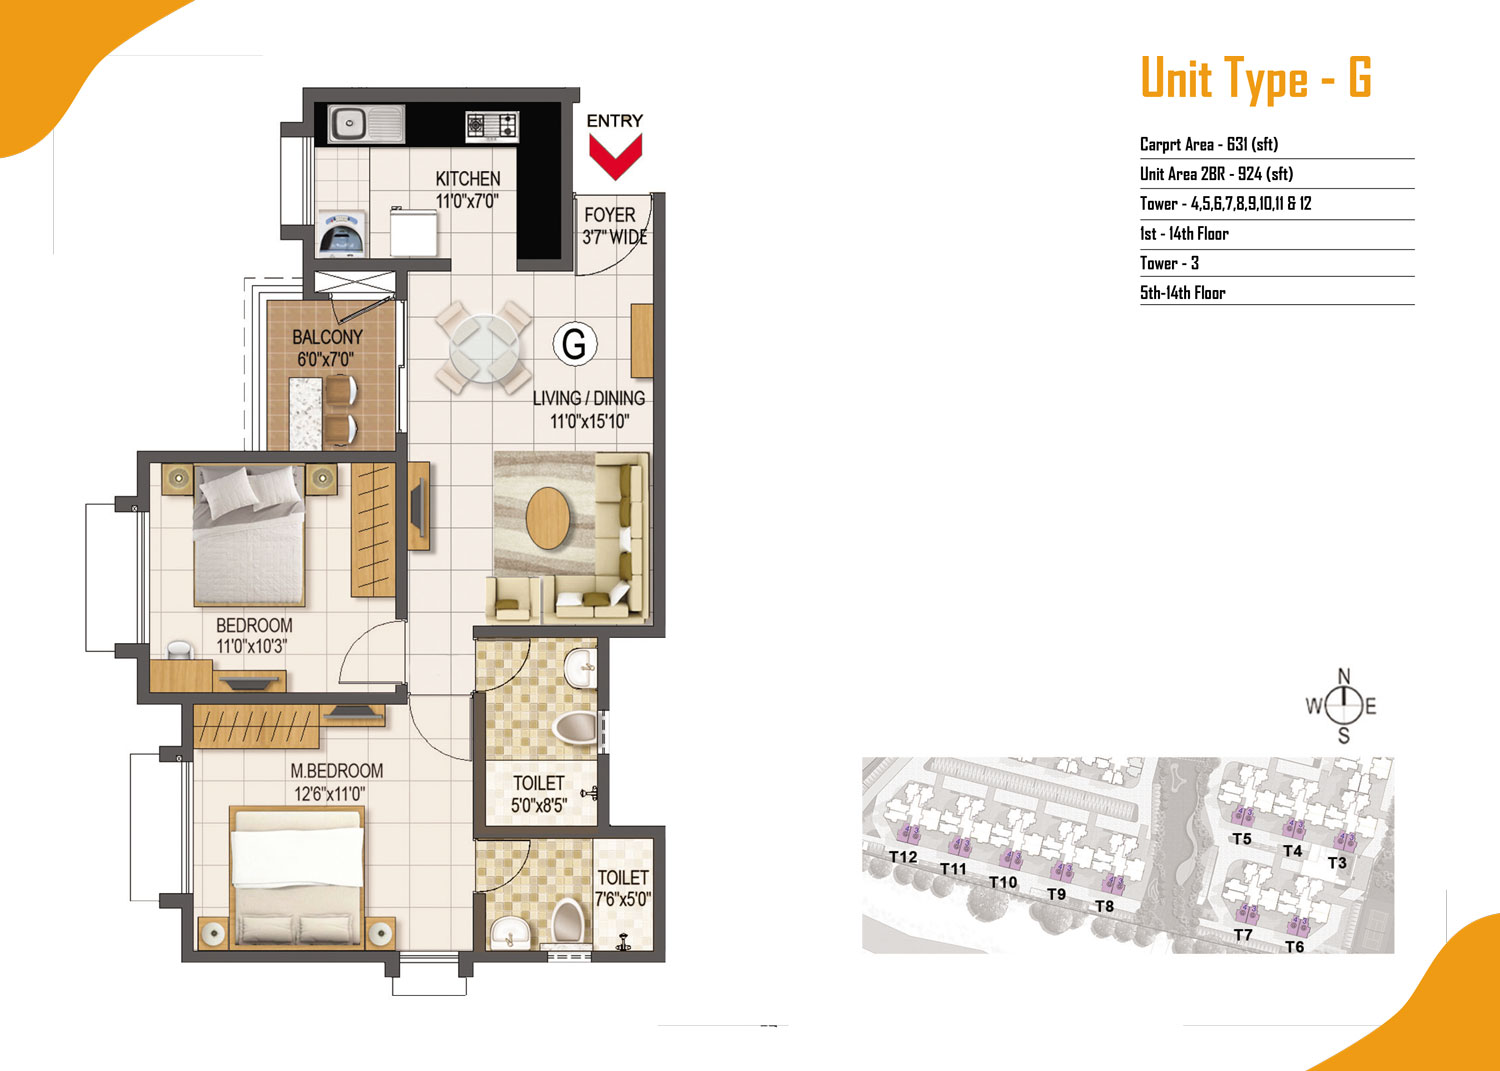 Type G - 2 Bed - 924 Sq Ft